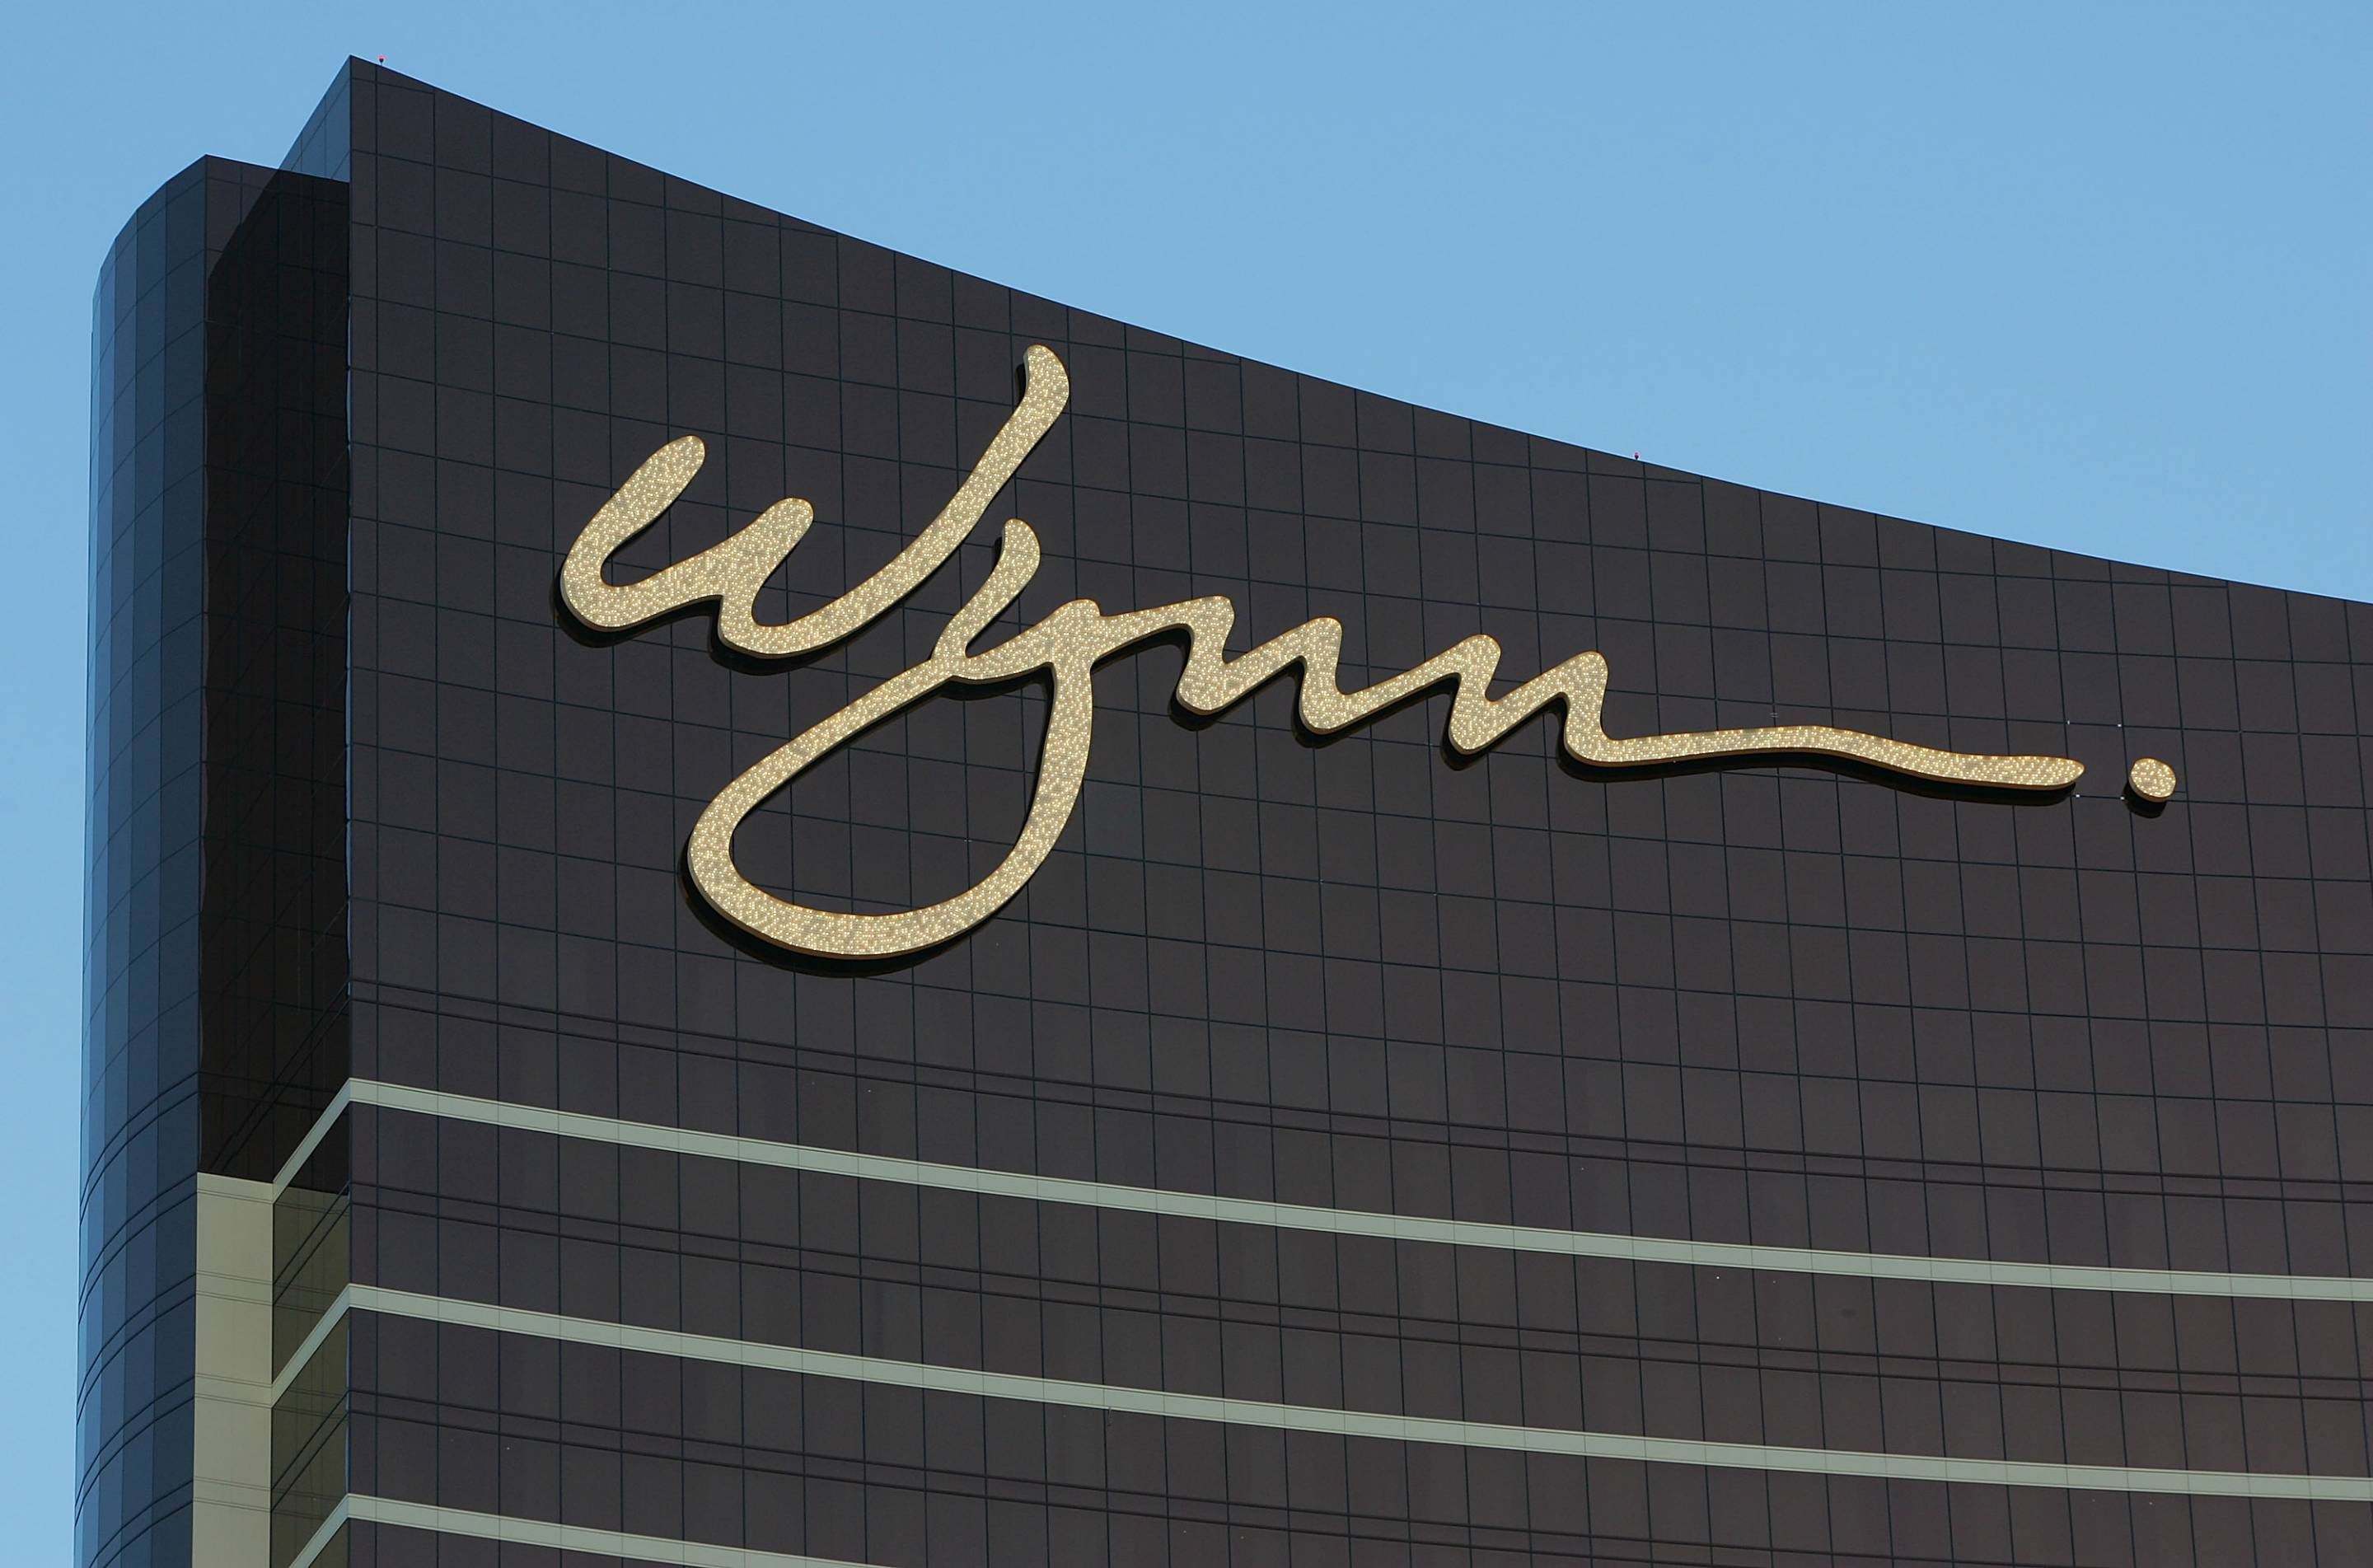 Exterior of Wynn Resorts building on Las Vegas Strip